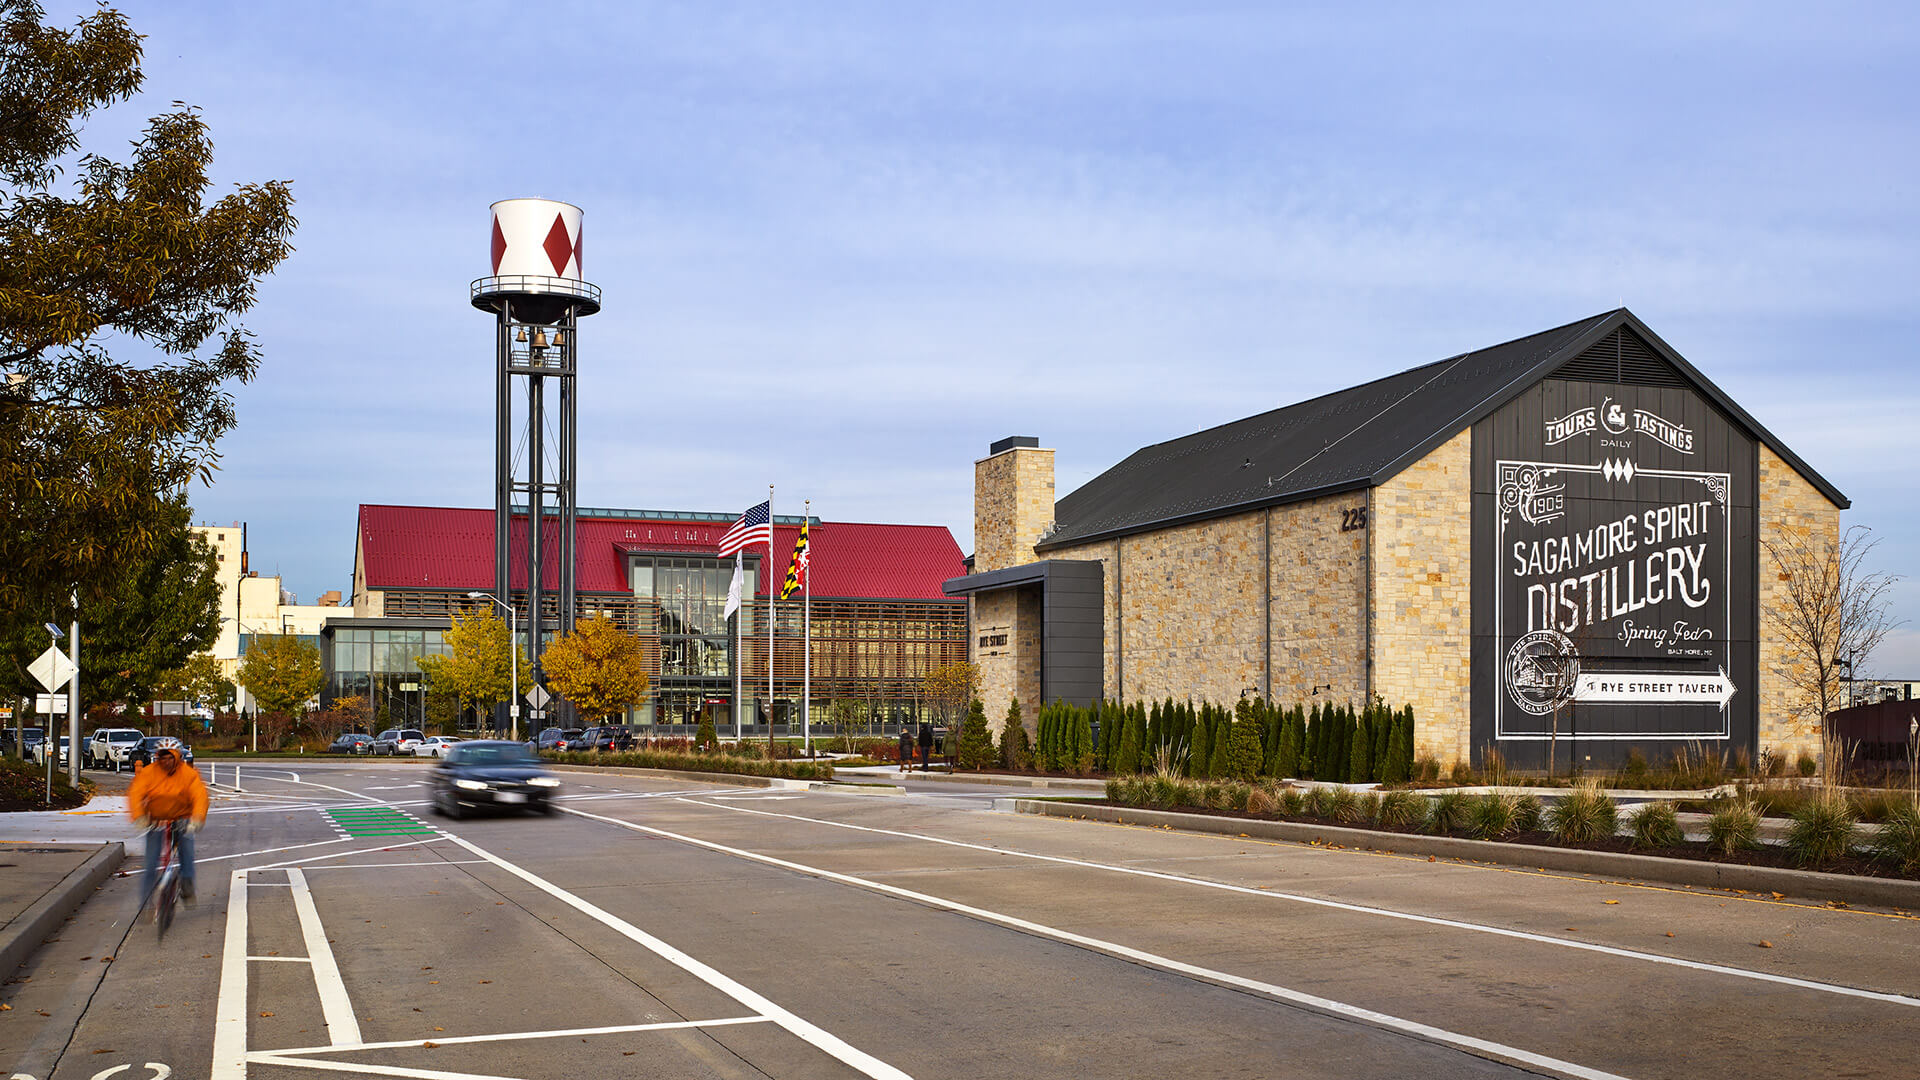 Front of the Sagamore Spirit Distillery in Baltimore, MD